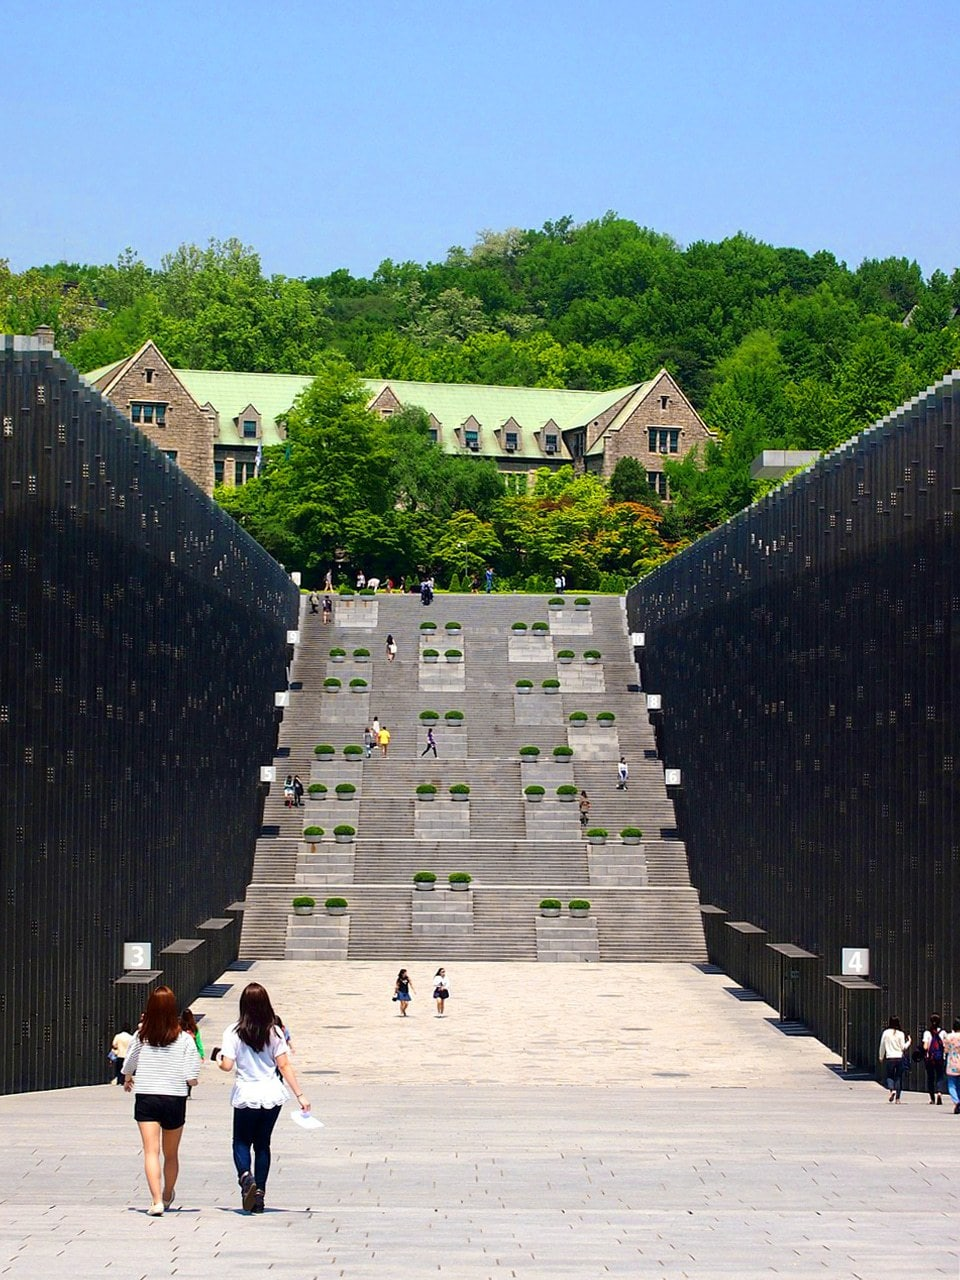 The amazing glass structure ECC at Ewha